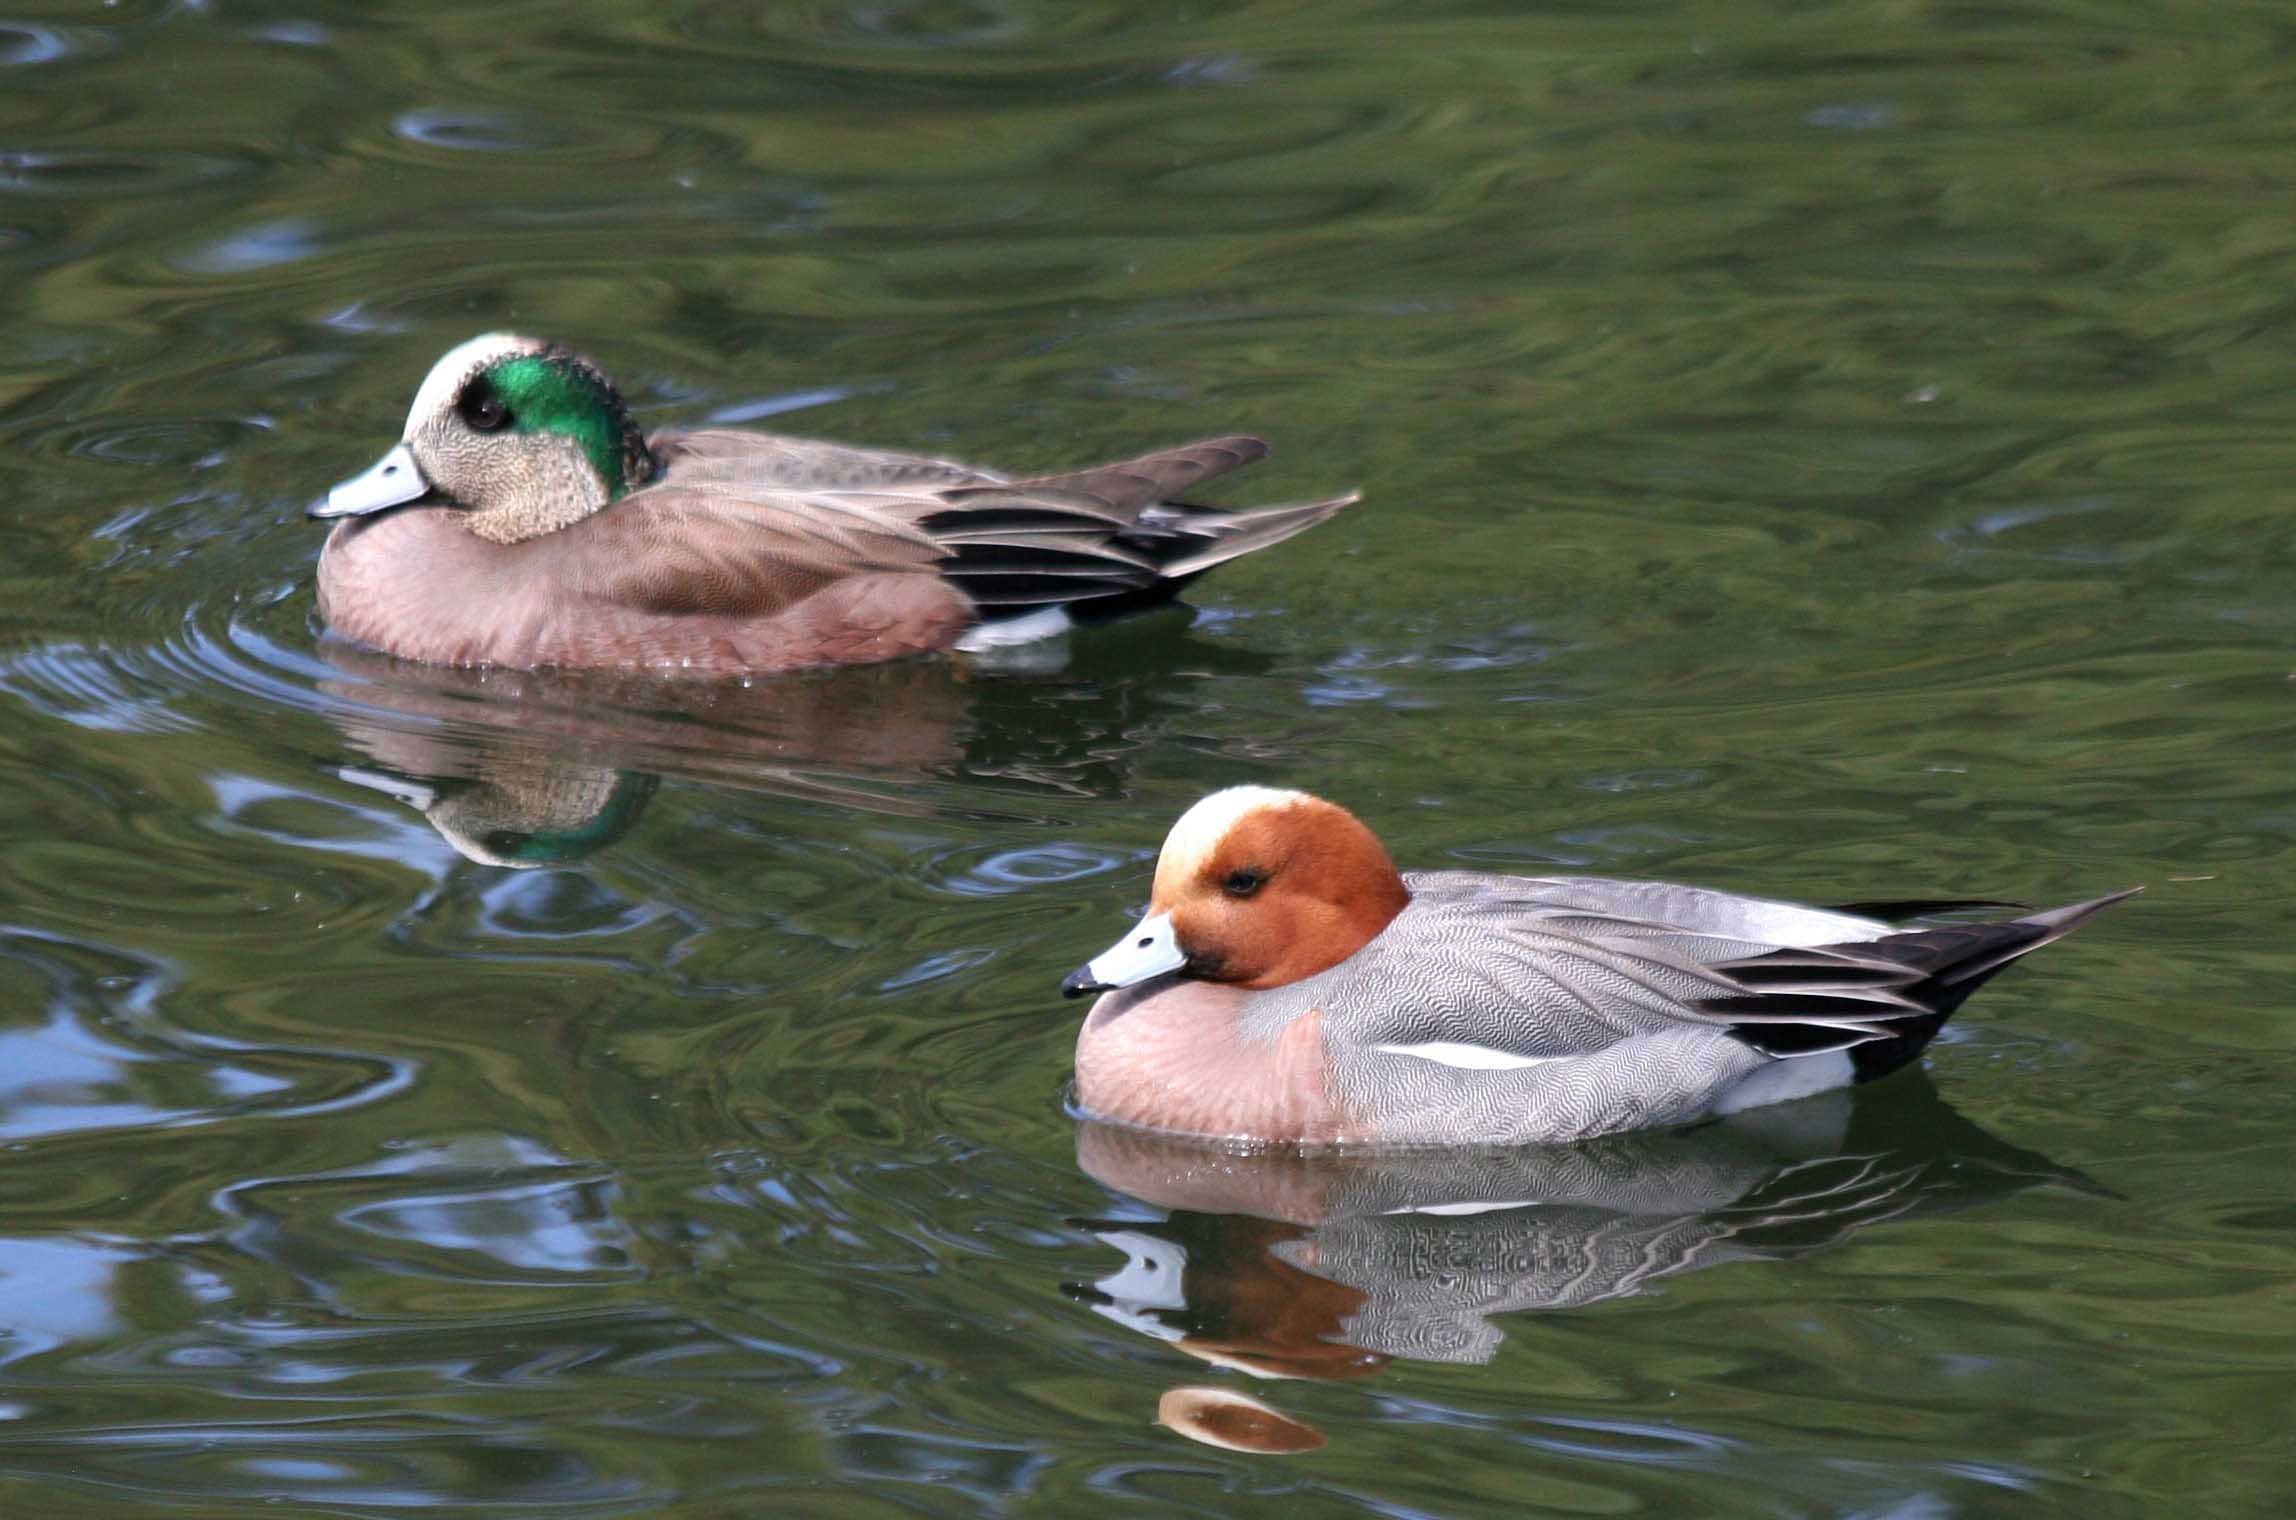 Eurasian wigeon male and female images